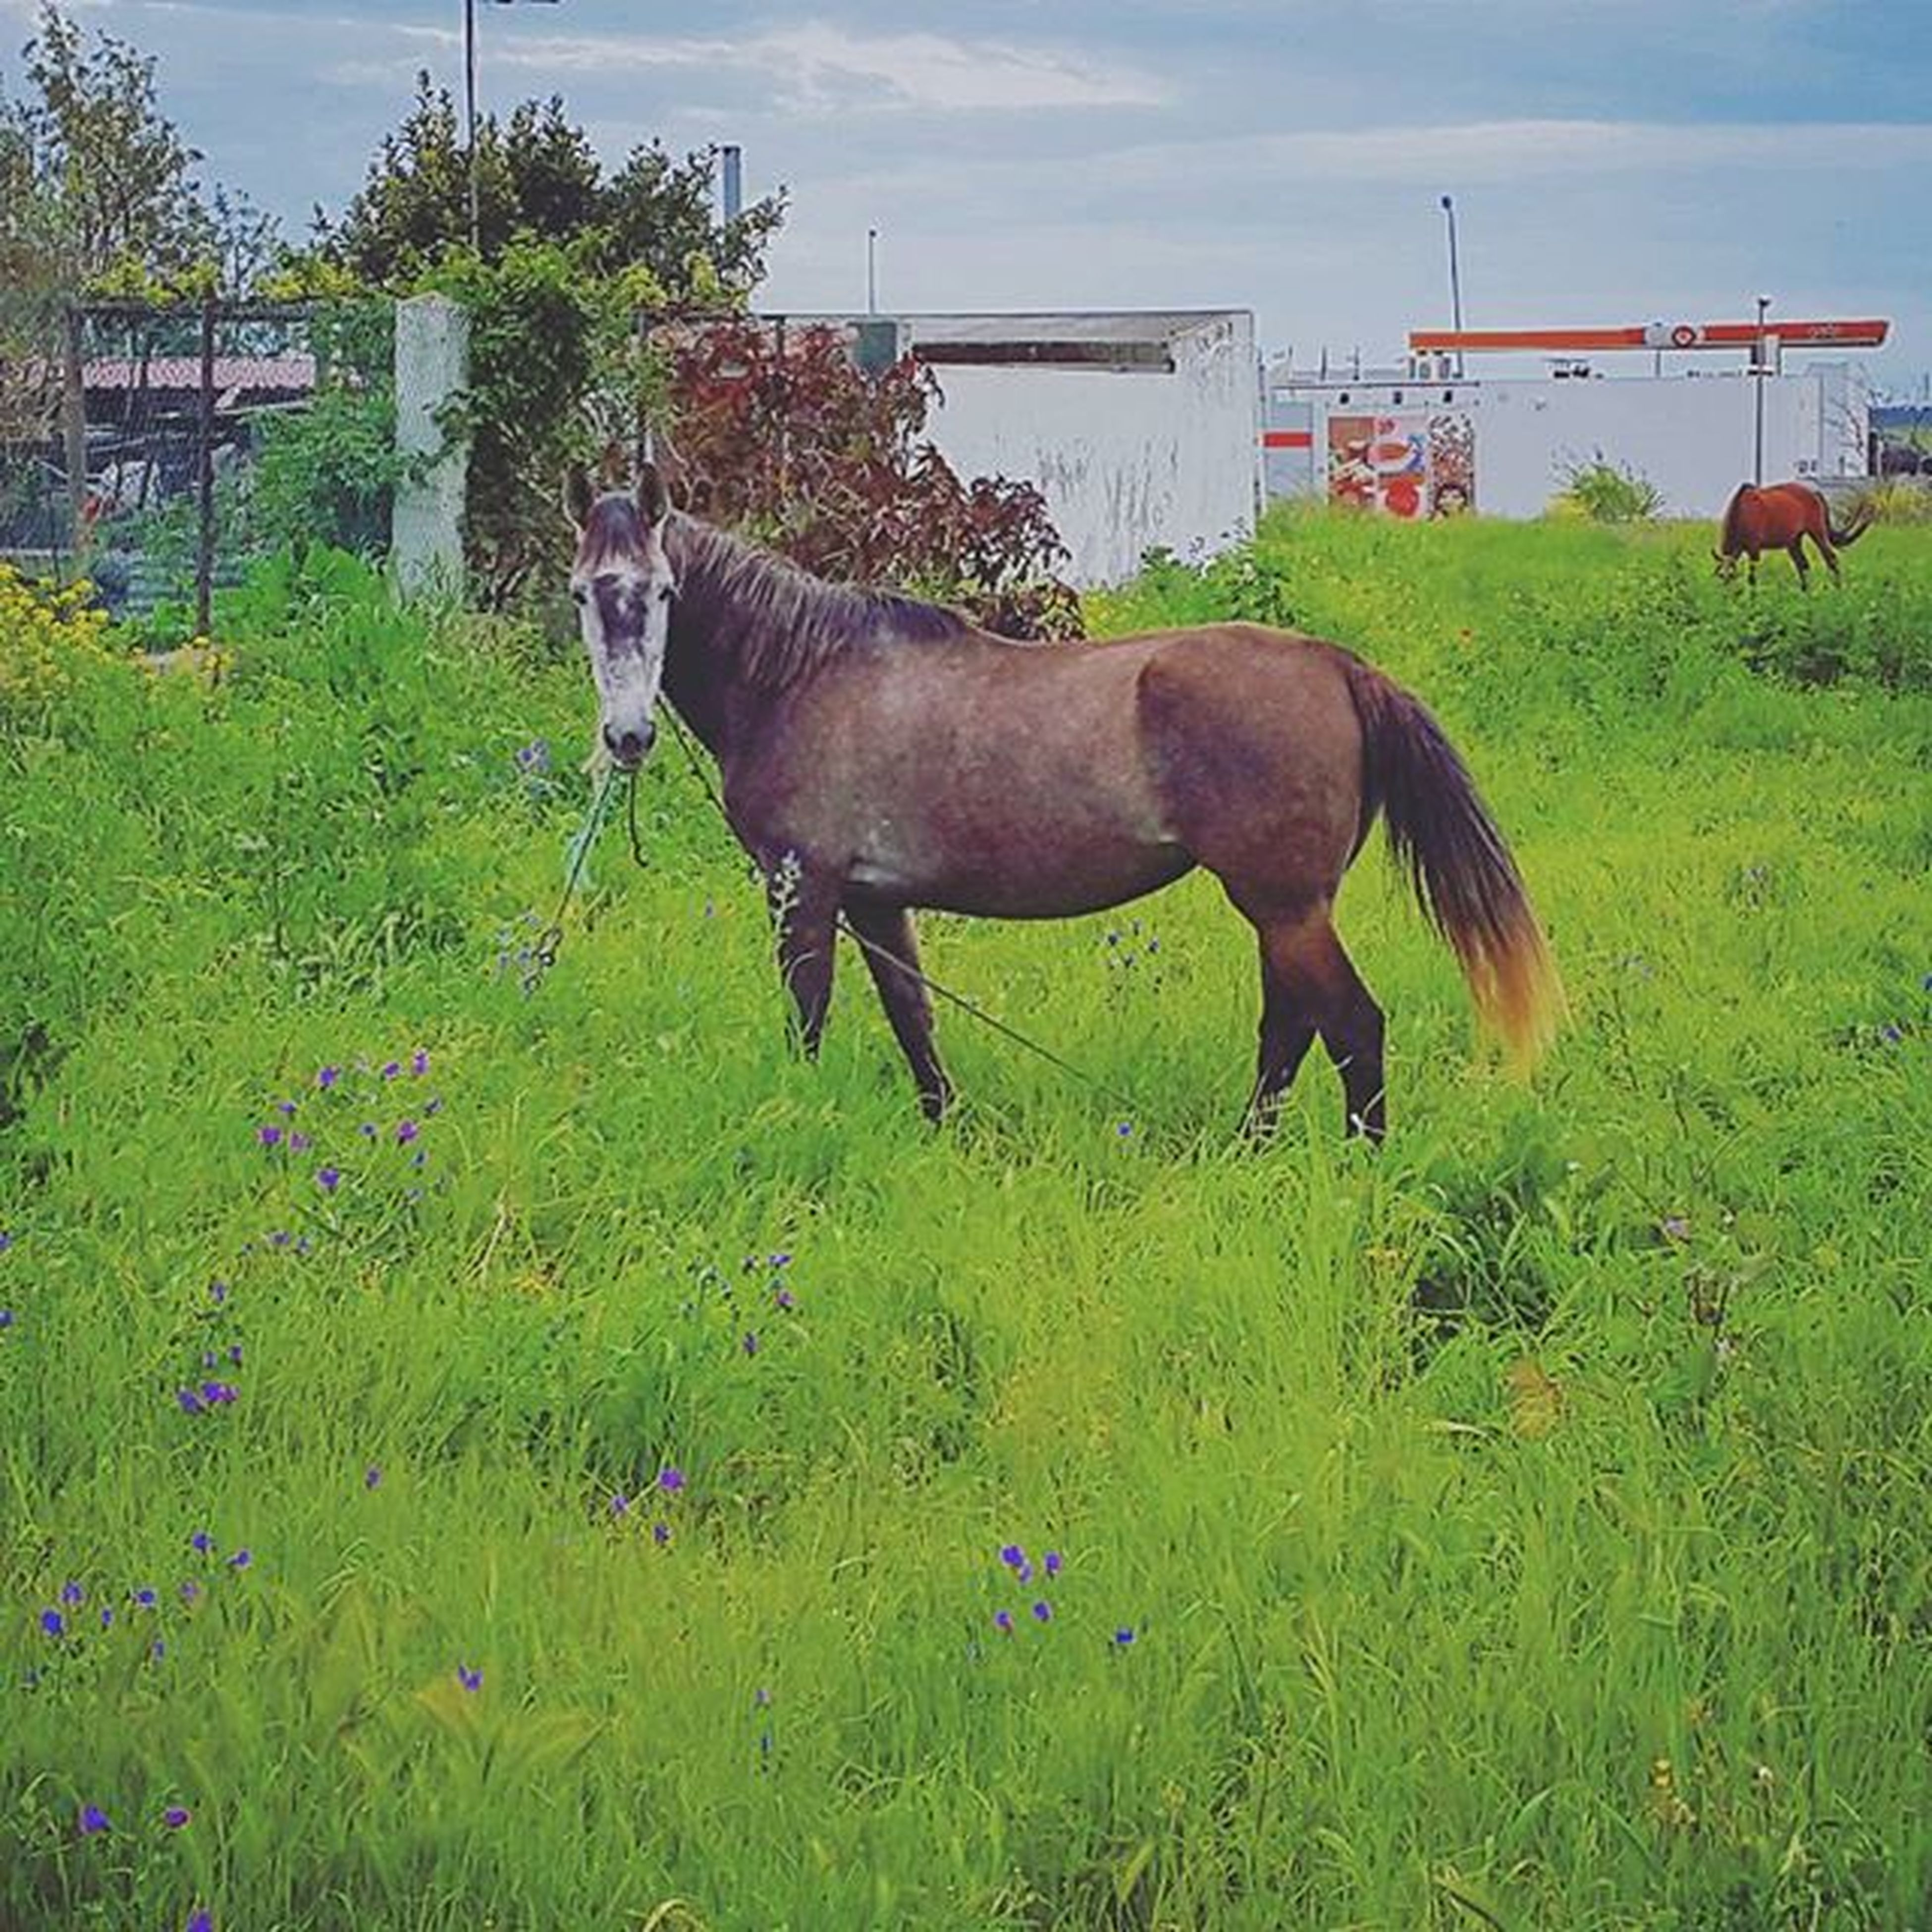 animal themes, domestic animals, grass, livestock, horse, field, mammal, grassy, grazing, herbivorous, sky, fence, cow, one animal, standing, green color, working animal, nature, two animals, rural scene